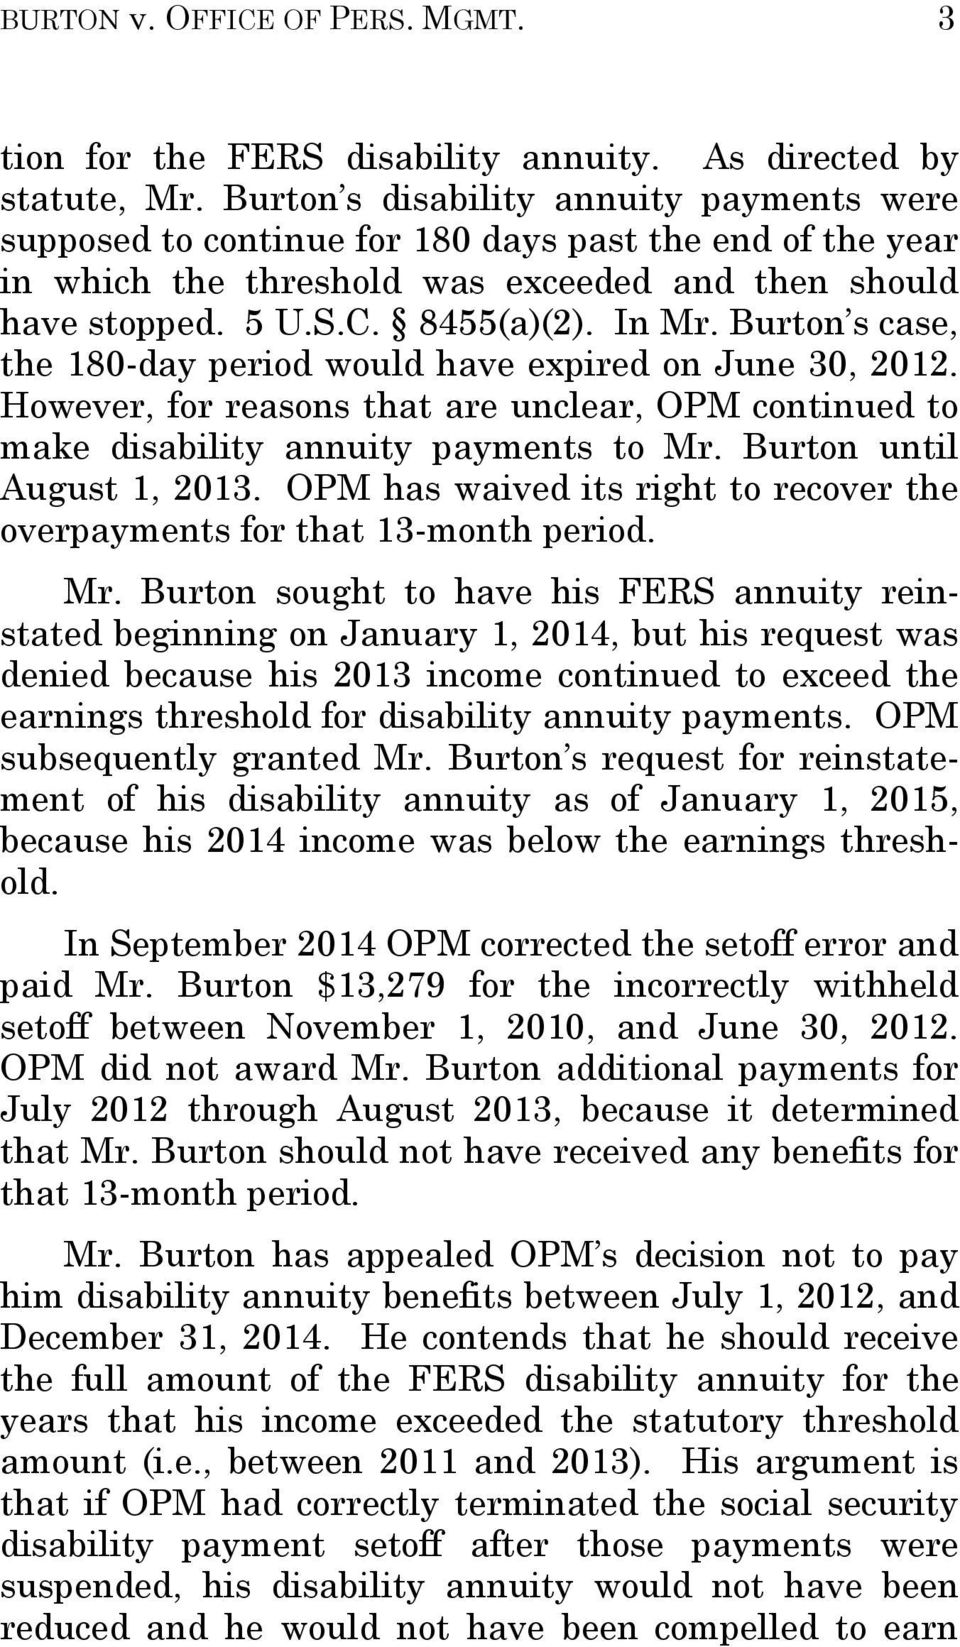 Burton s case, the 180-day period would have expired on June 30, 2012. However, for reasons that are unclear, OPM continued to make disability annuity payments to Mr. Burton until August 1, 2013.